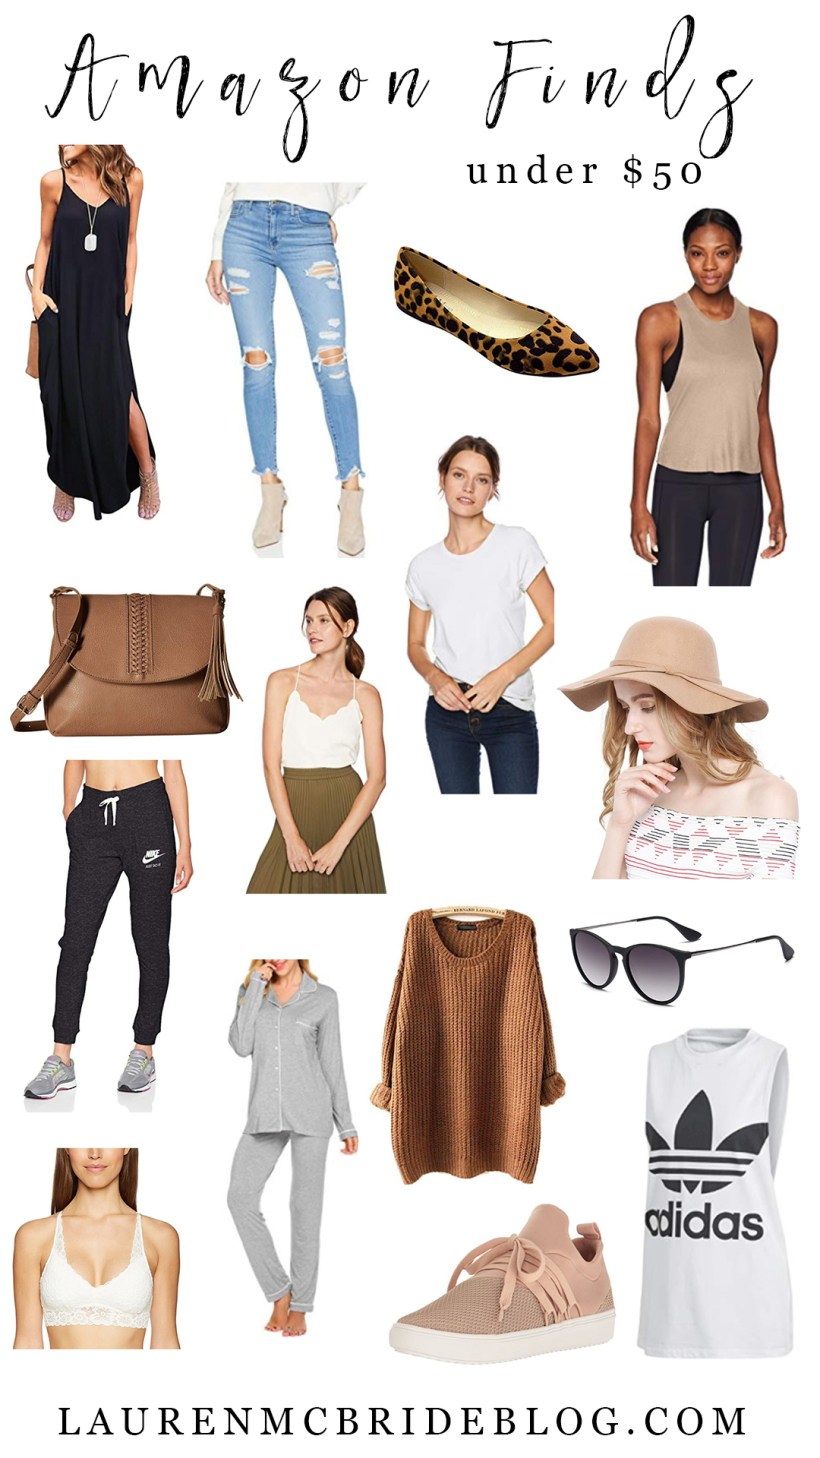 Connecticut life and style blogger Lauren McBride shares her September Amazon Finds Under $50, including pajama sets, fall items, and great basics.